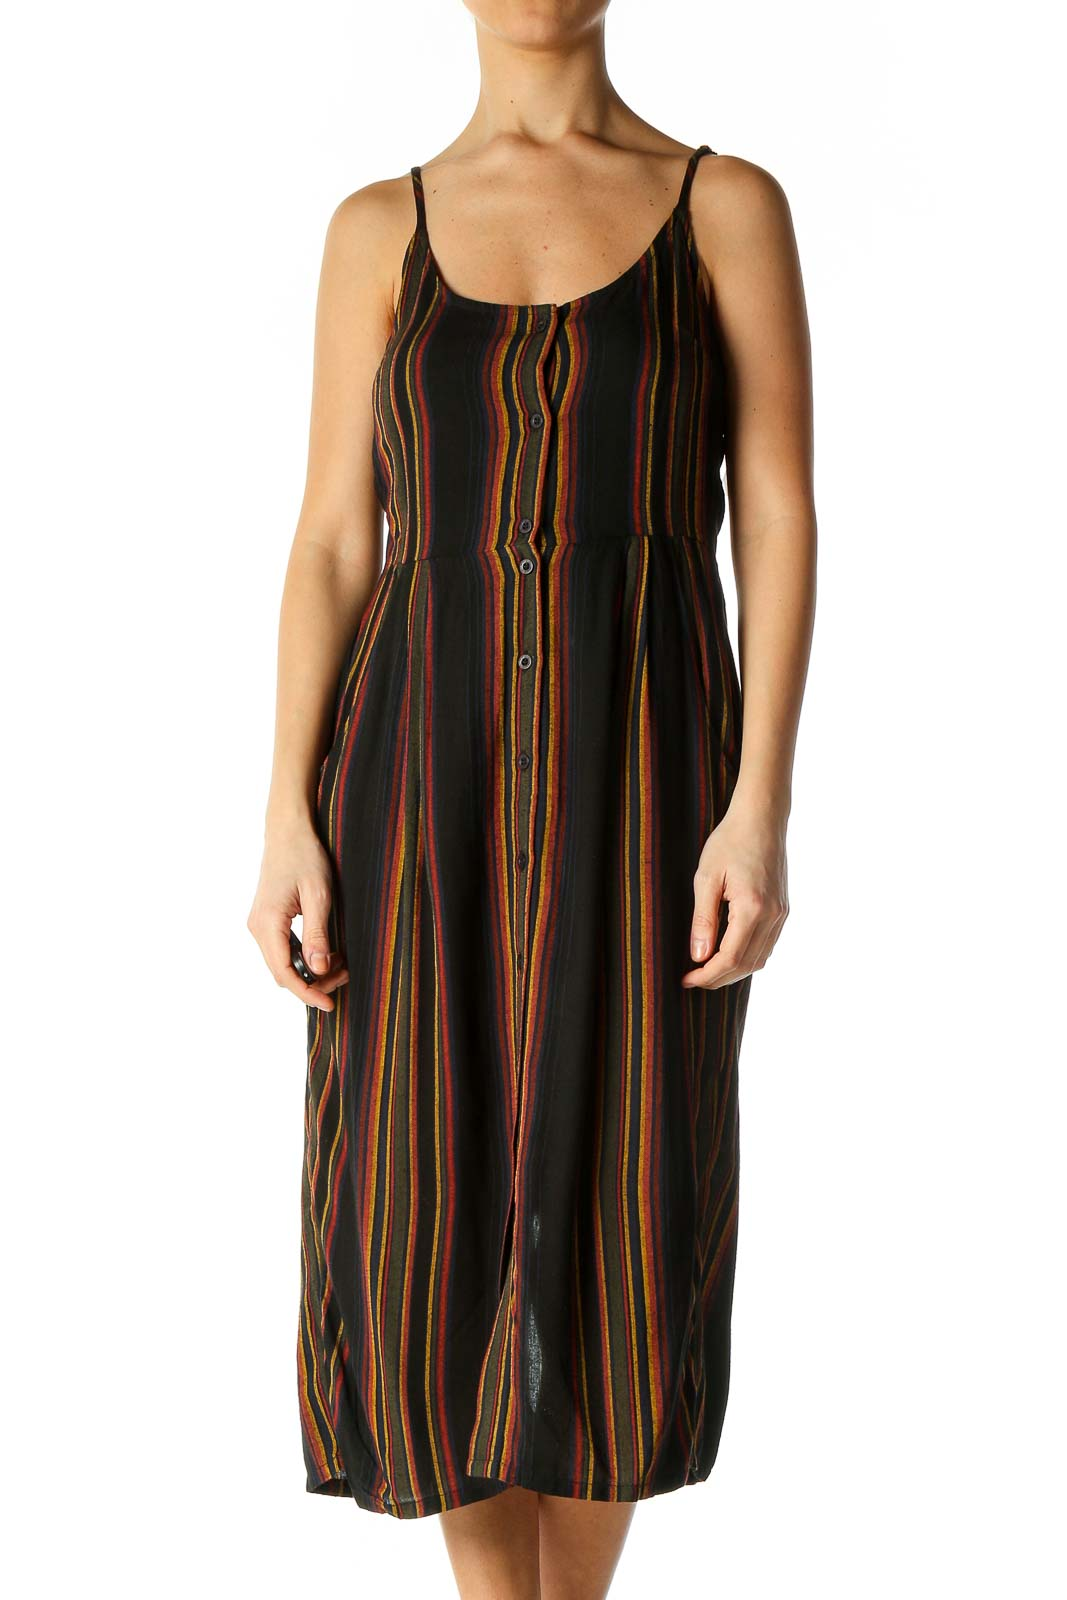 Black Striped Casual A-Line Dress Front